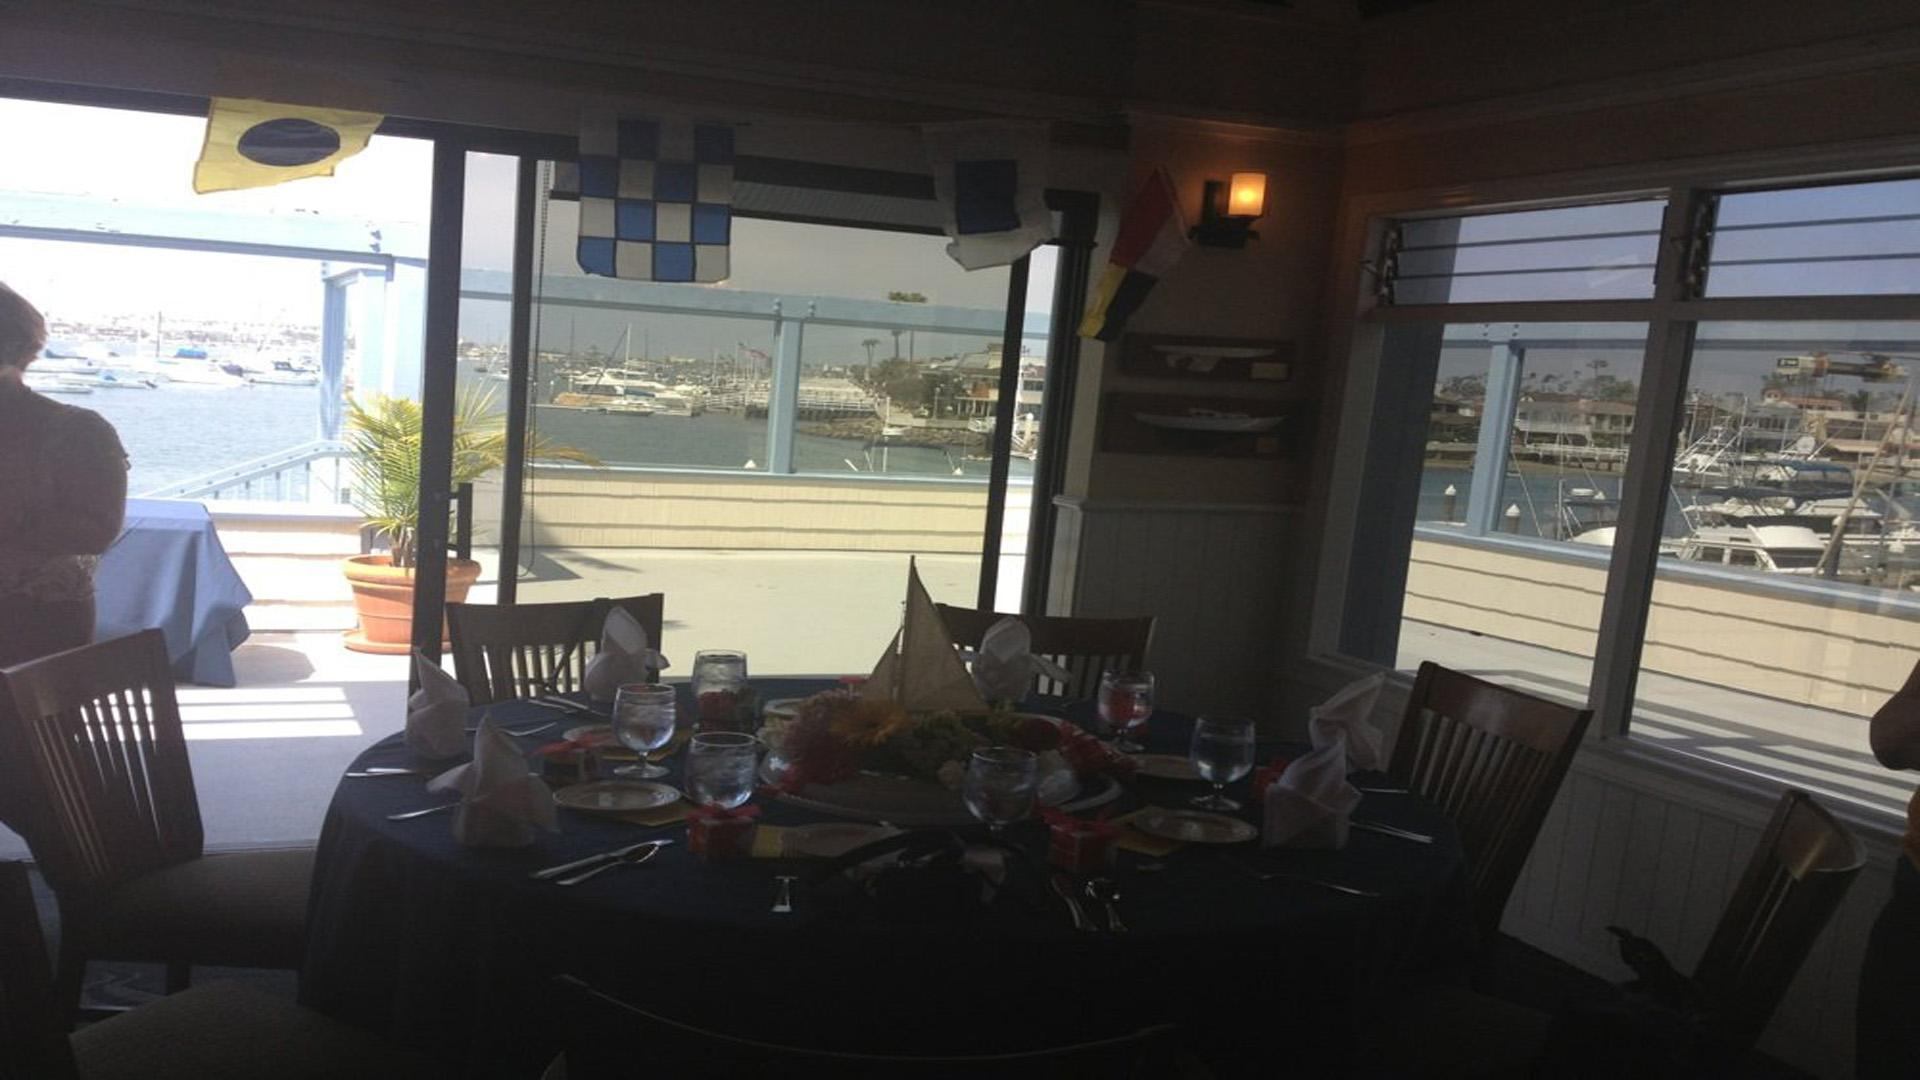 space at Balboa Yacht Club